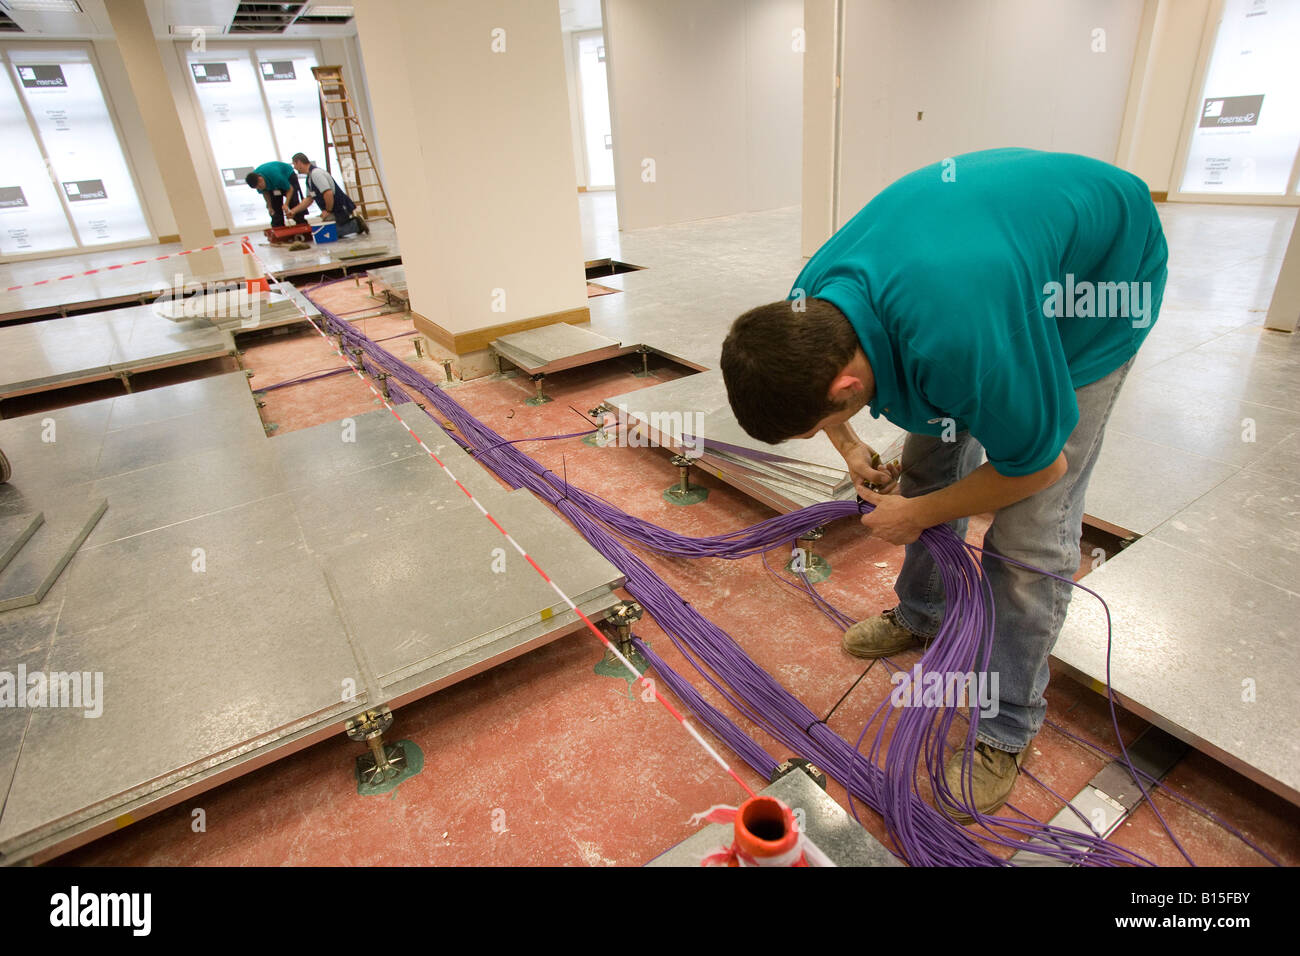 Data cabling is routed under a raised floor in a newly constructed office building. - Stock Image